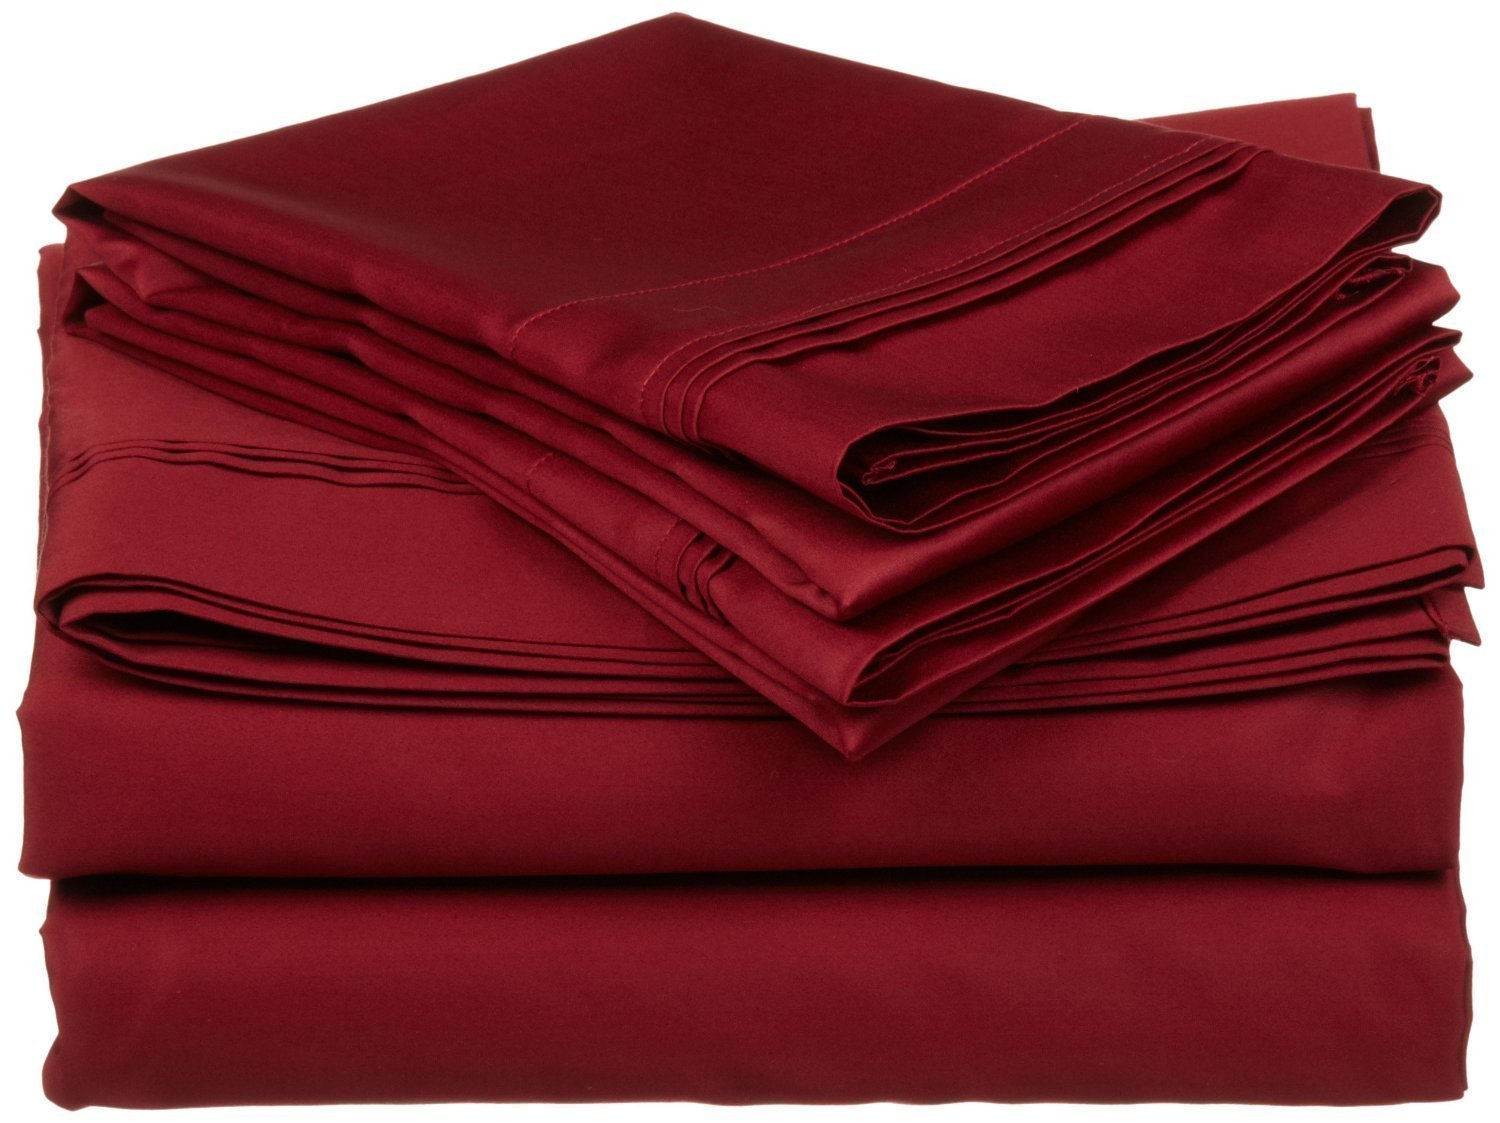 SRP Bedding 300 Thread Count Egyptian Cotton Super Soft Soft 3-Piece (Flat Sheet + Pillow Cases) Emperor Solid Burgundy